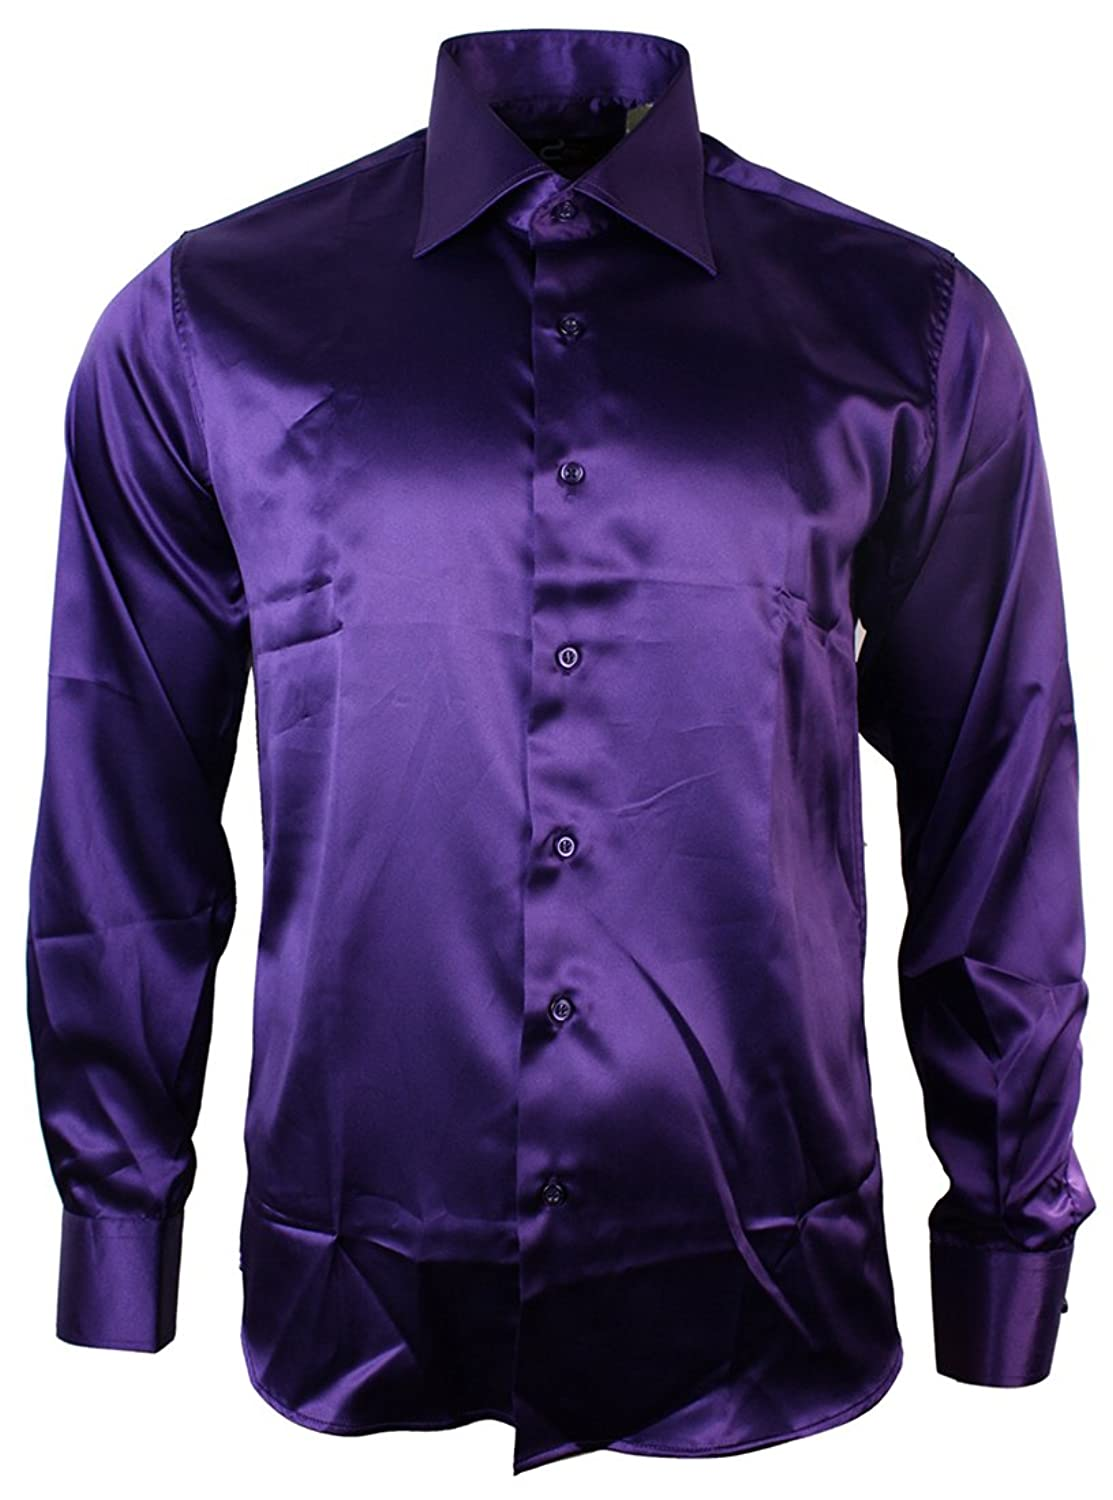 Find great deals on eBay for mens purple shirts. Shop with confidence.